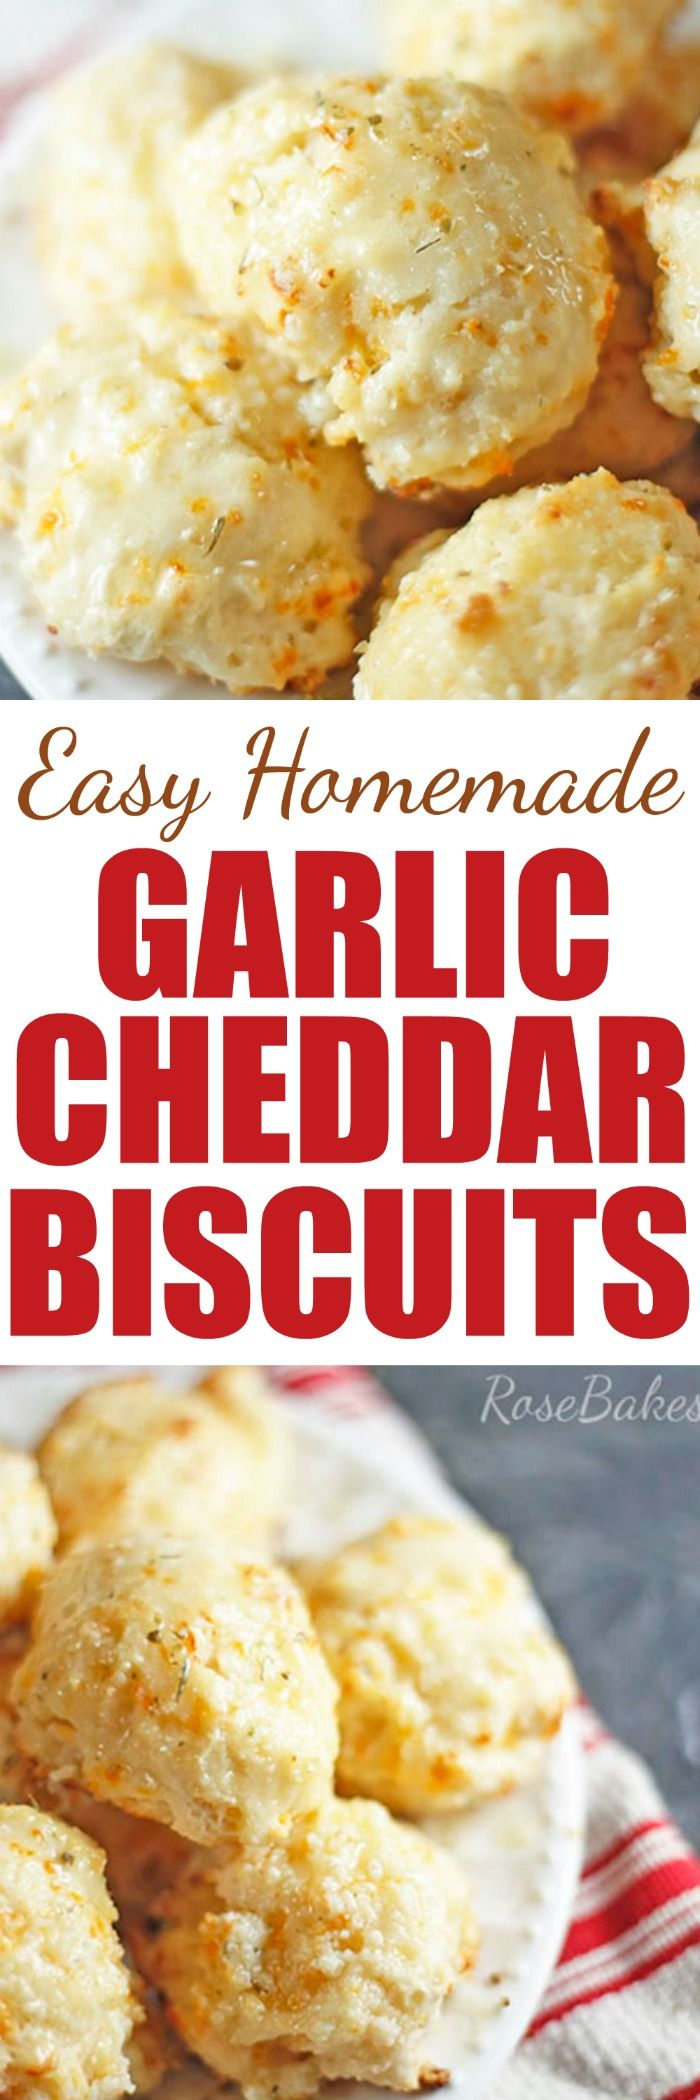 Easy Homemade Garlic Cheddar Biscuits. These biscuits are so easy your kids can make them & taste a lot like Cheddar Bay Biscuits from Red Lobster!